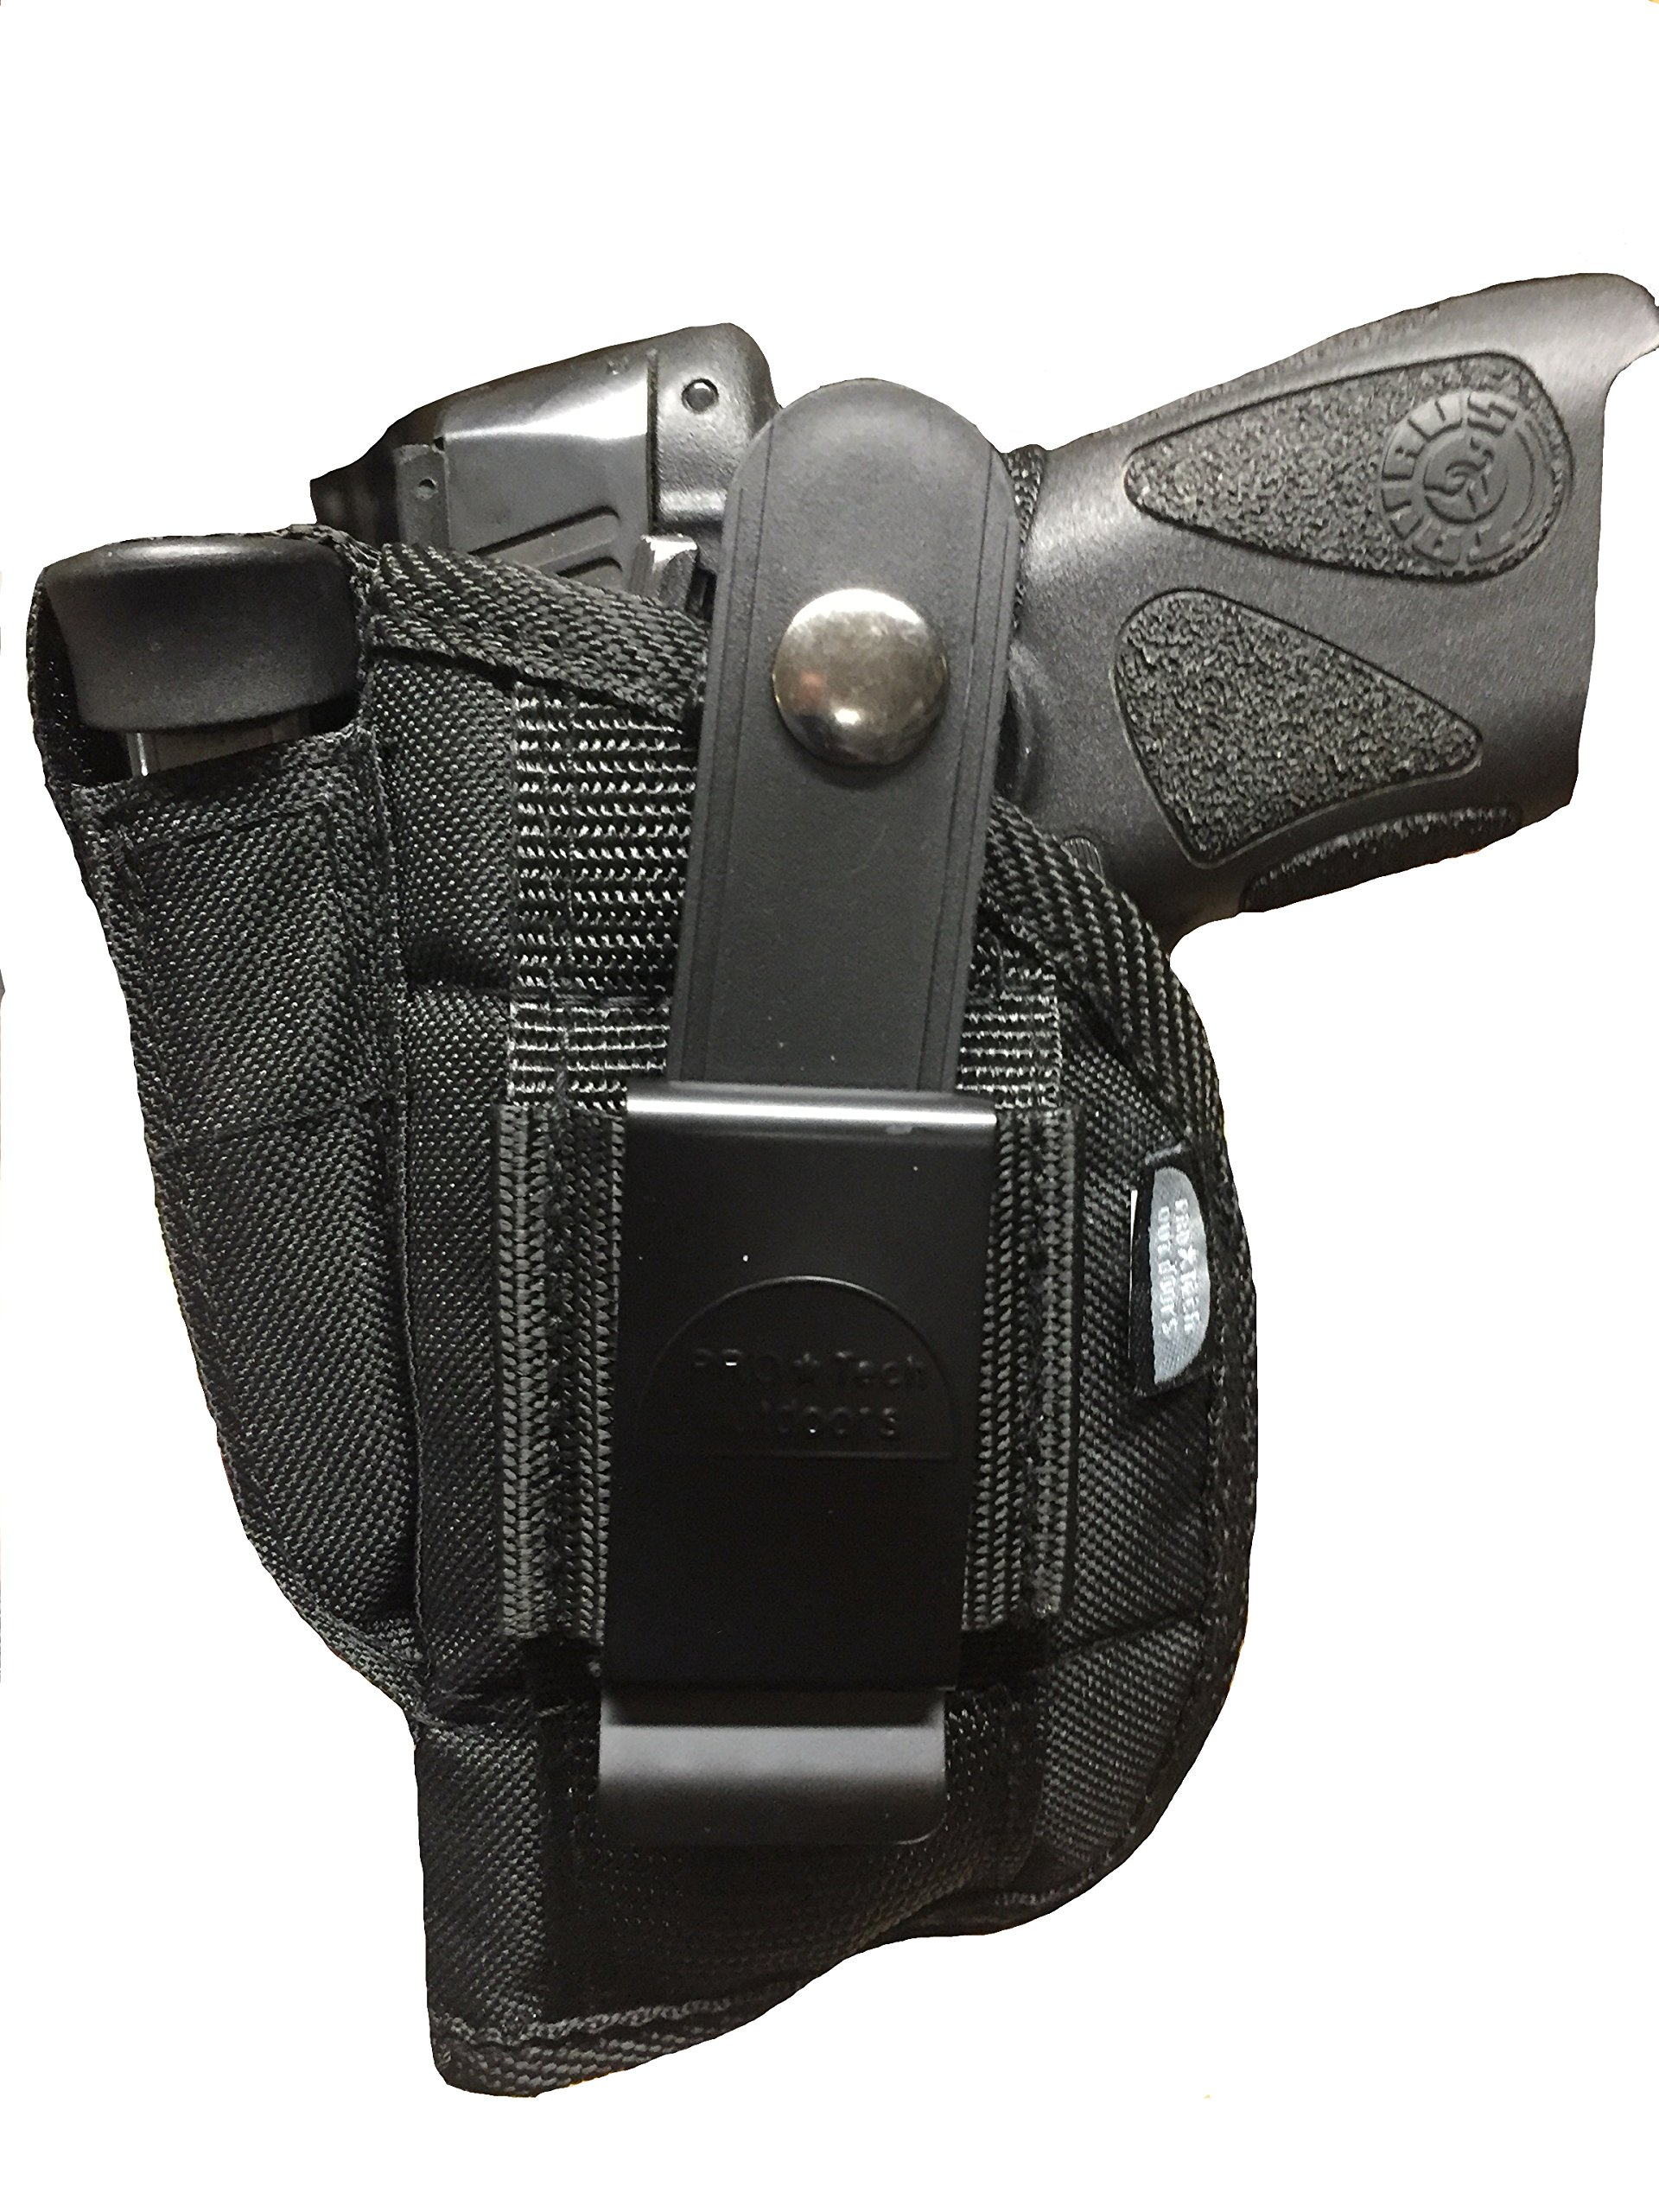 Pro-Tech Outdoors Gun Holster for Ruger SR-22 With LASER